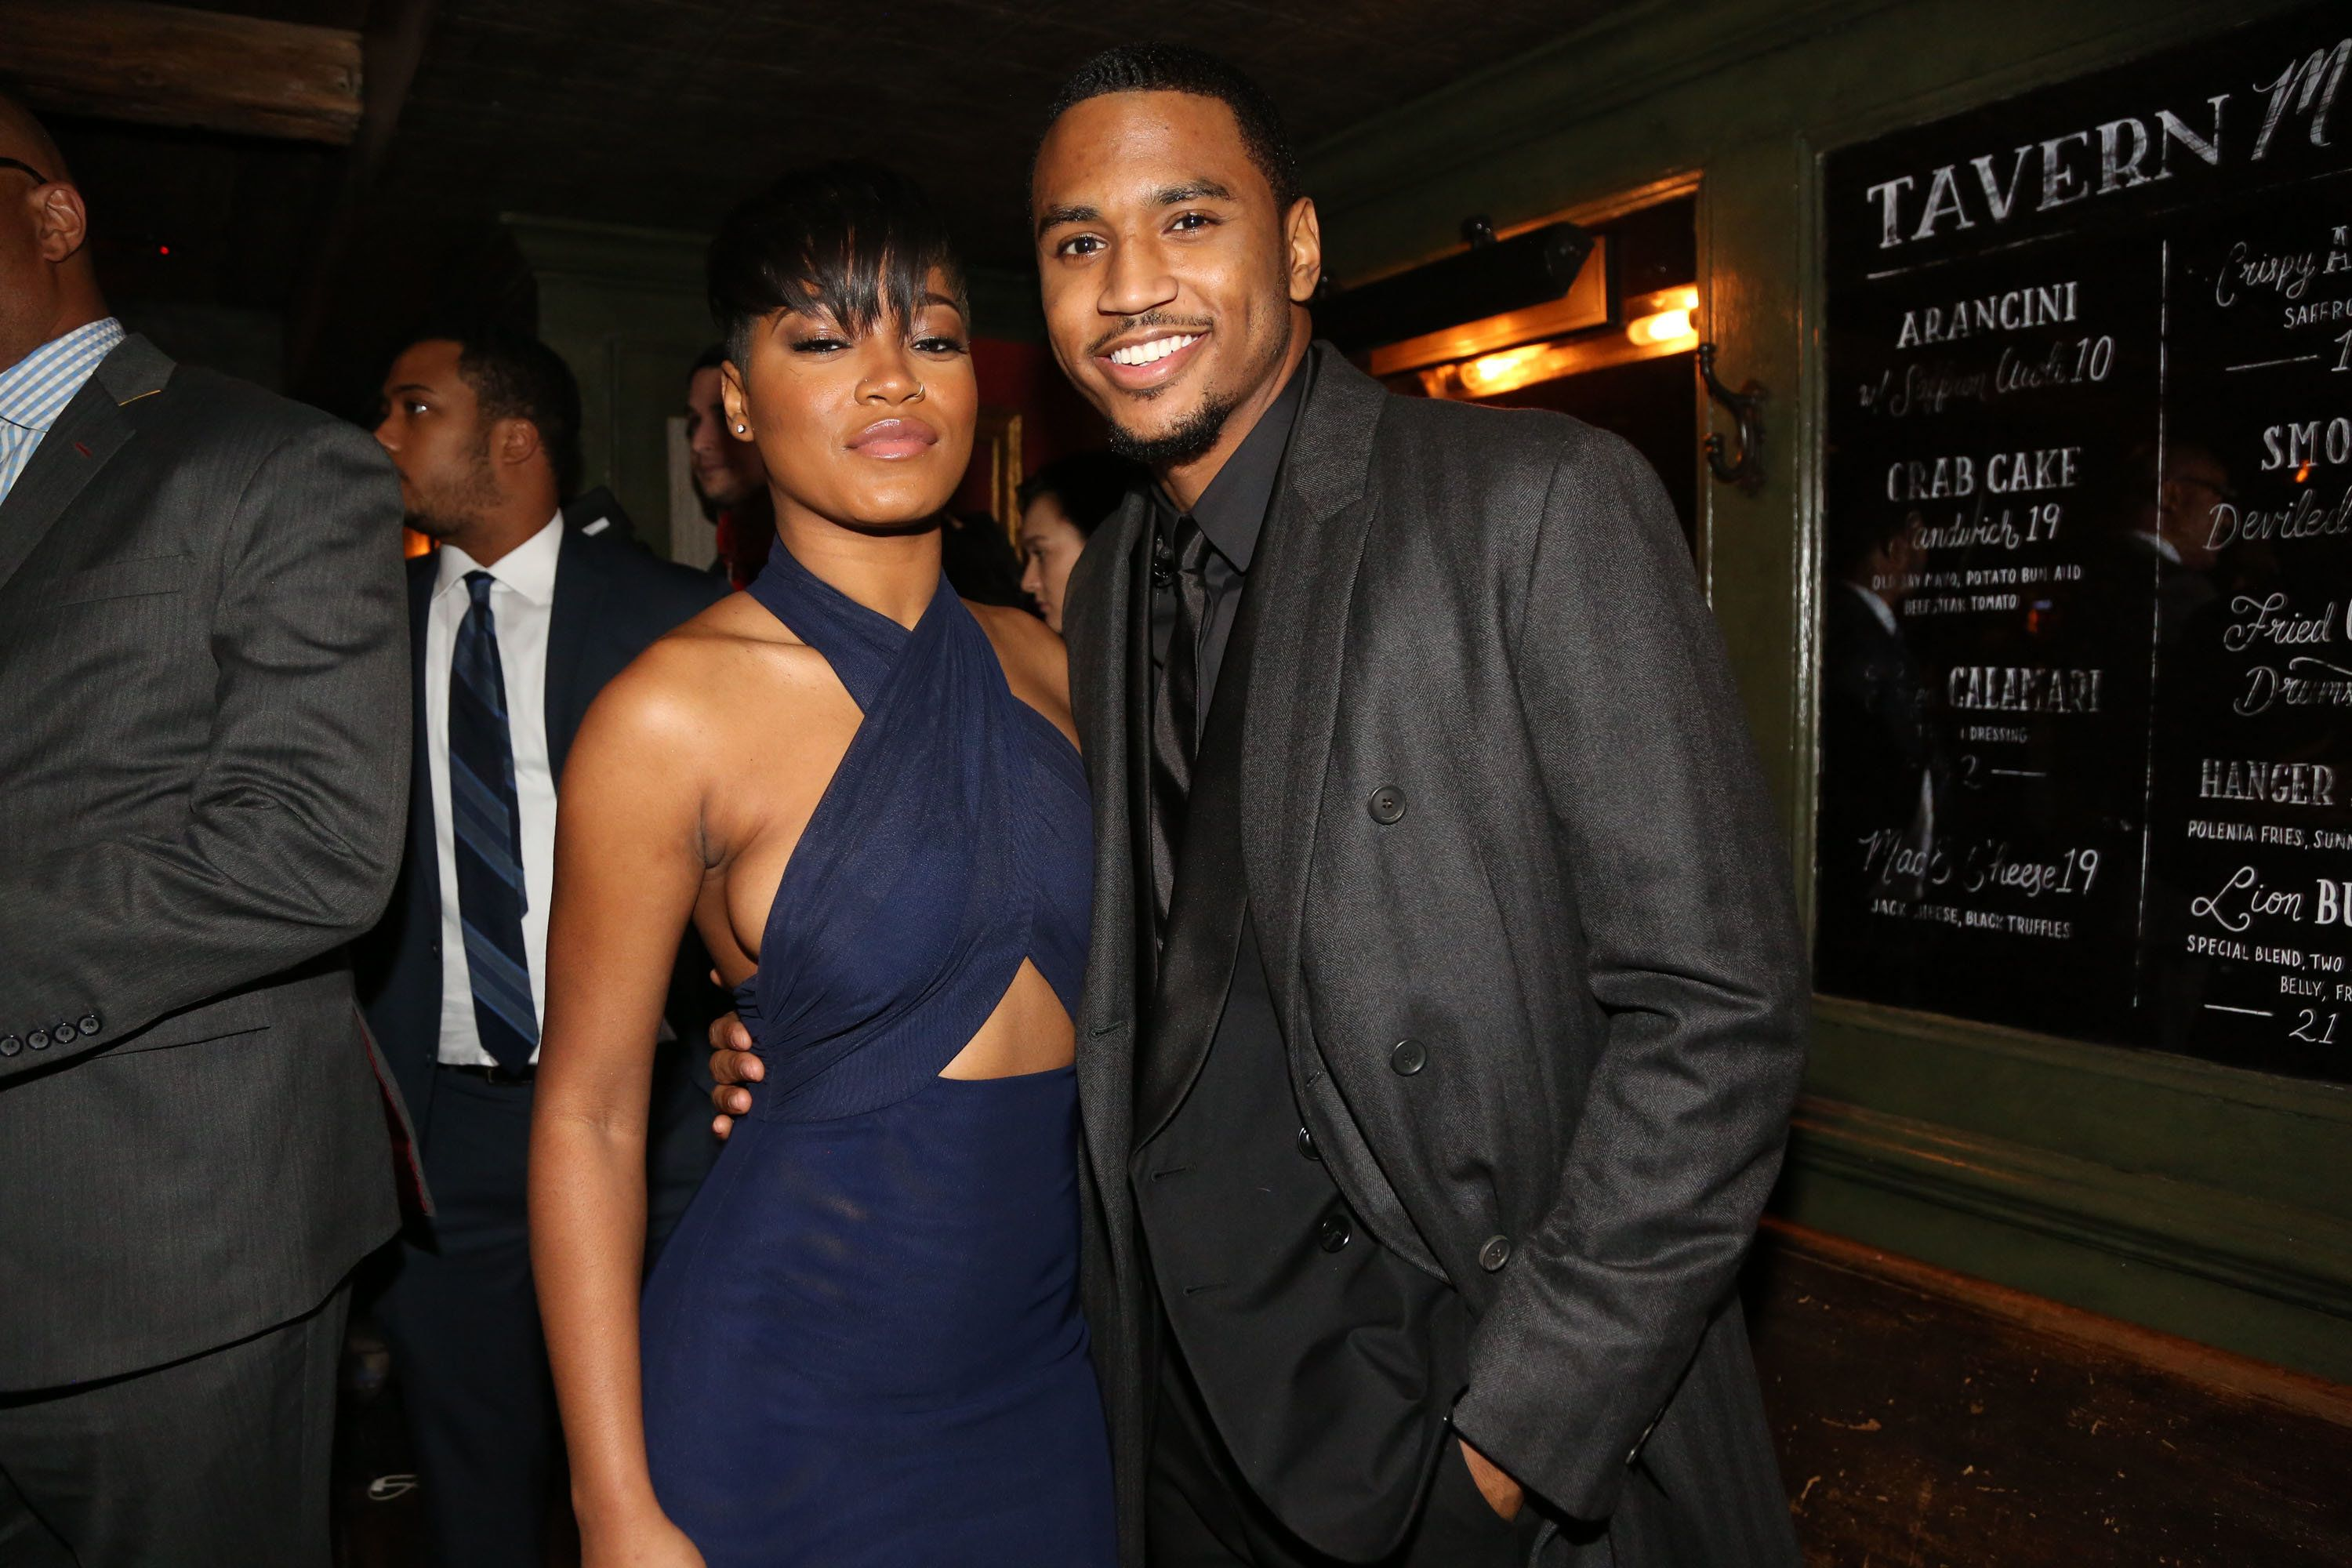 Keke Palmer and Trey Songz in 2014.